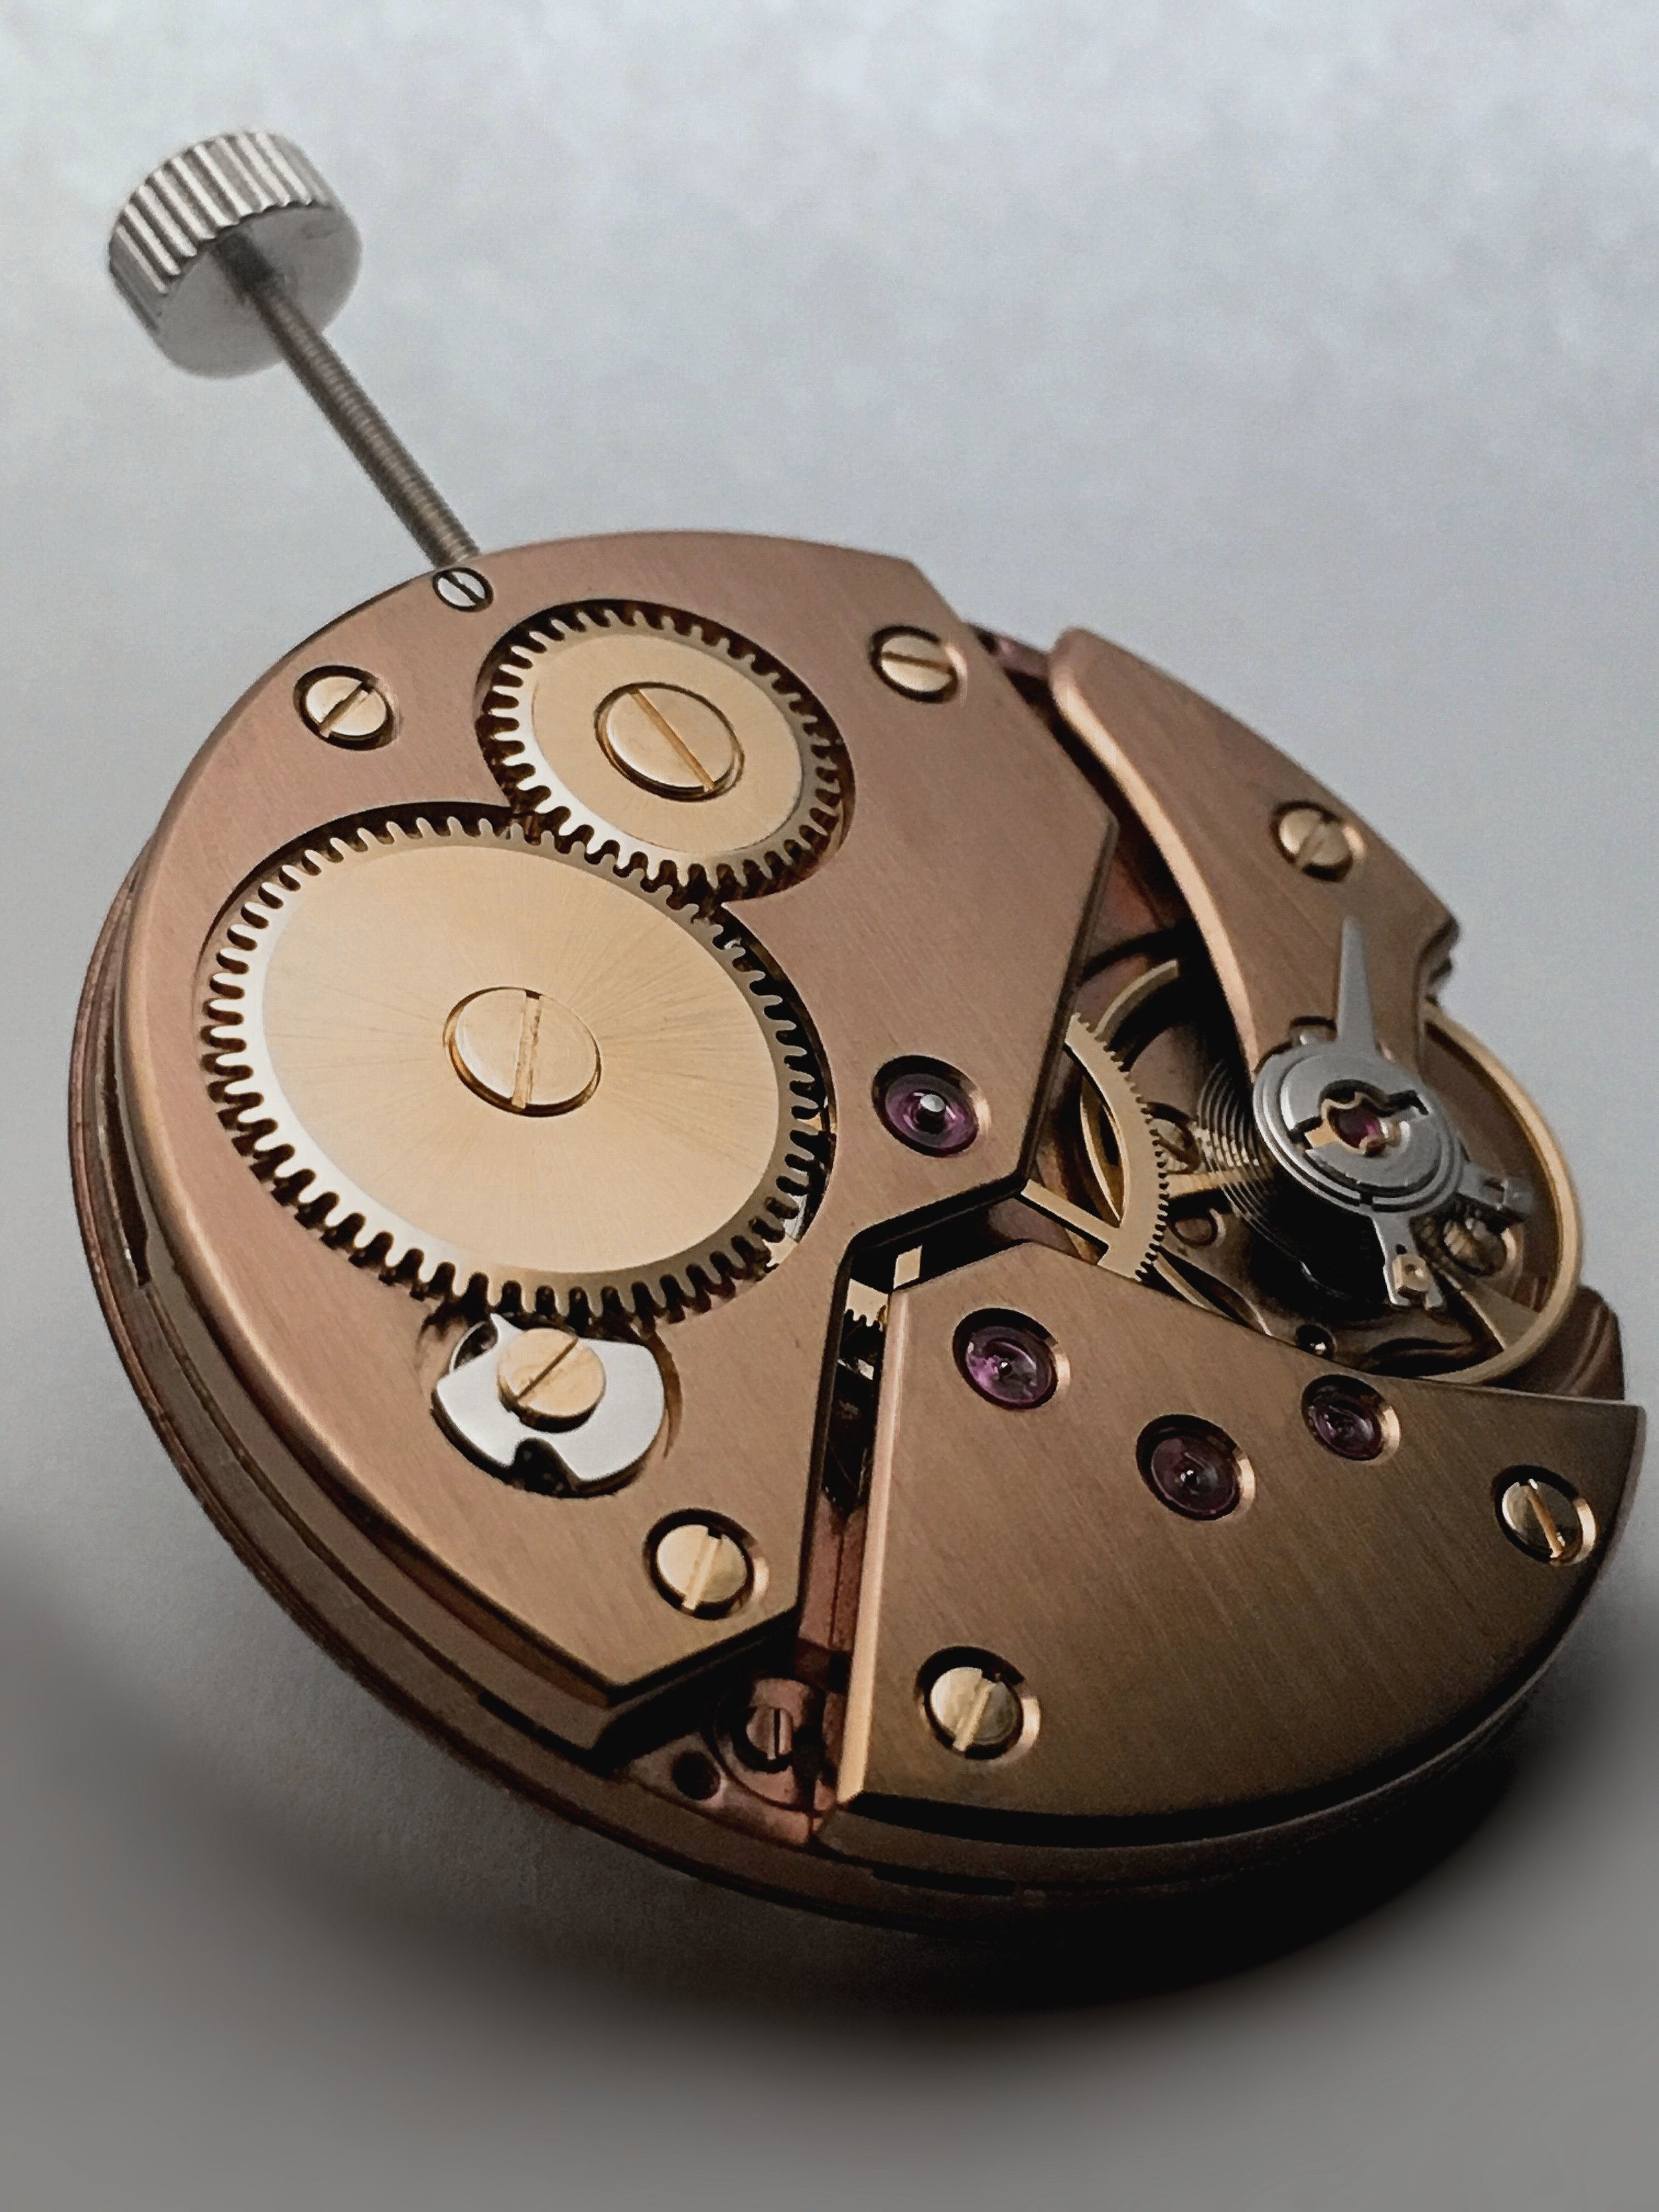 """LANDERON 98""  THE BROWN BRUSHED SURFACE STANDS IN BEAUTIFUL CONTRAST WITH ITS HANDMADE ANGLED/ POLISHED EDGES  THE ROSÉGOLD SCREWS GIVES THE MOVEMENT A NOBLE STYLING"